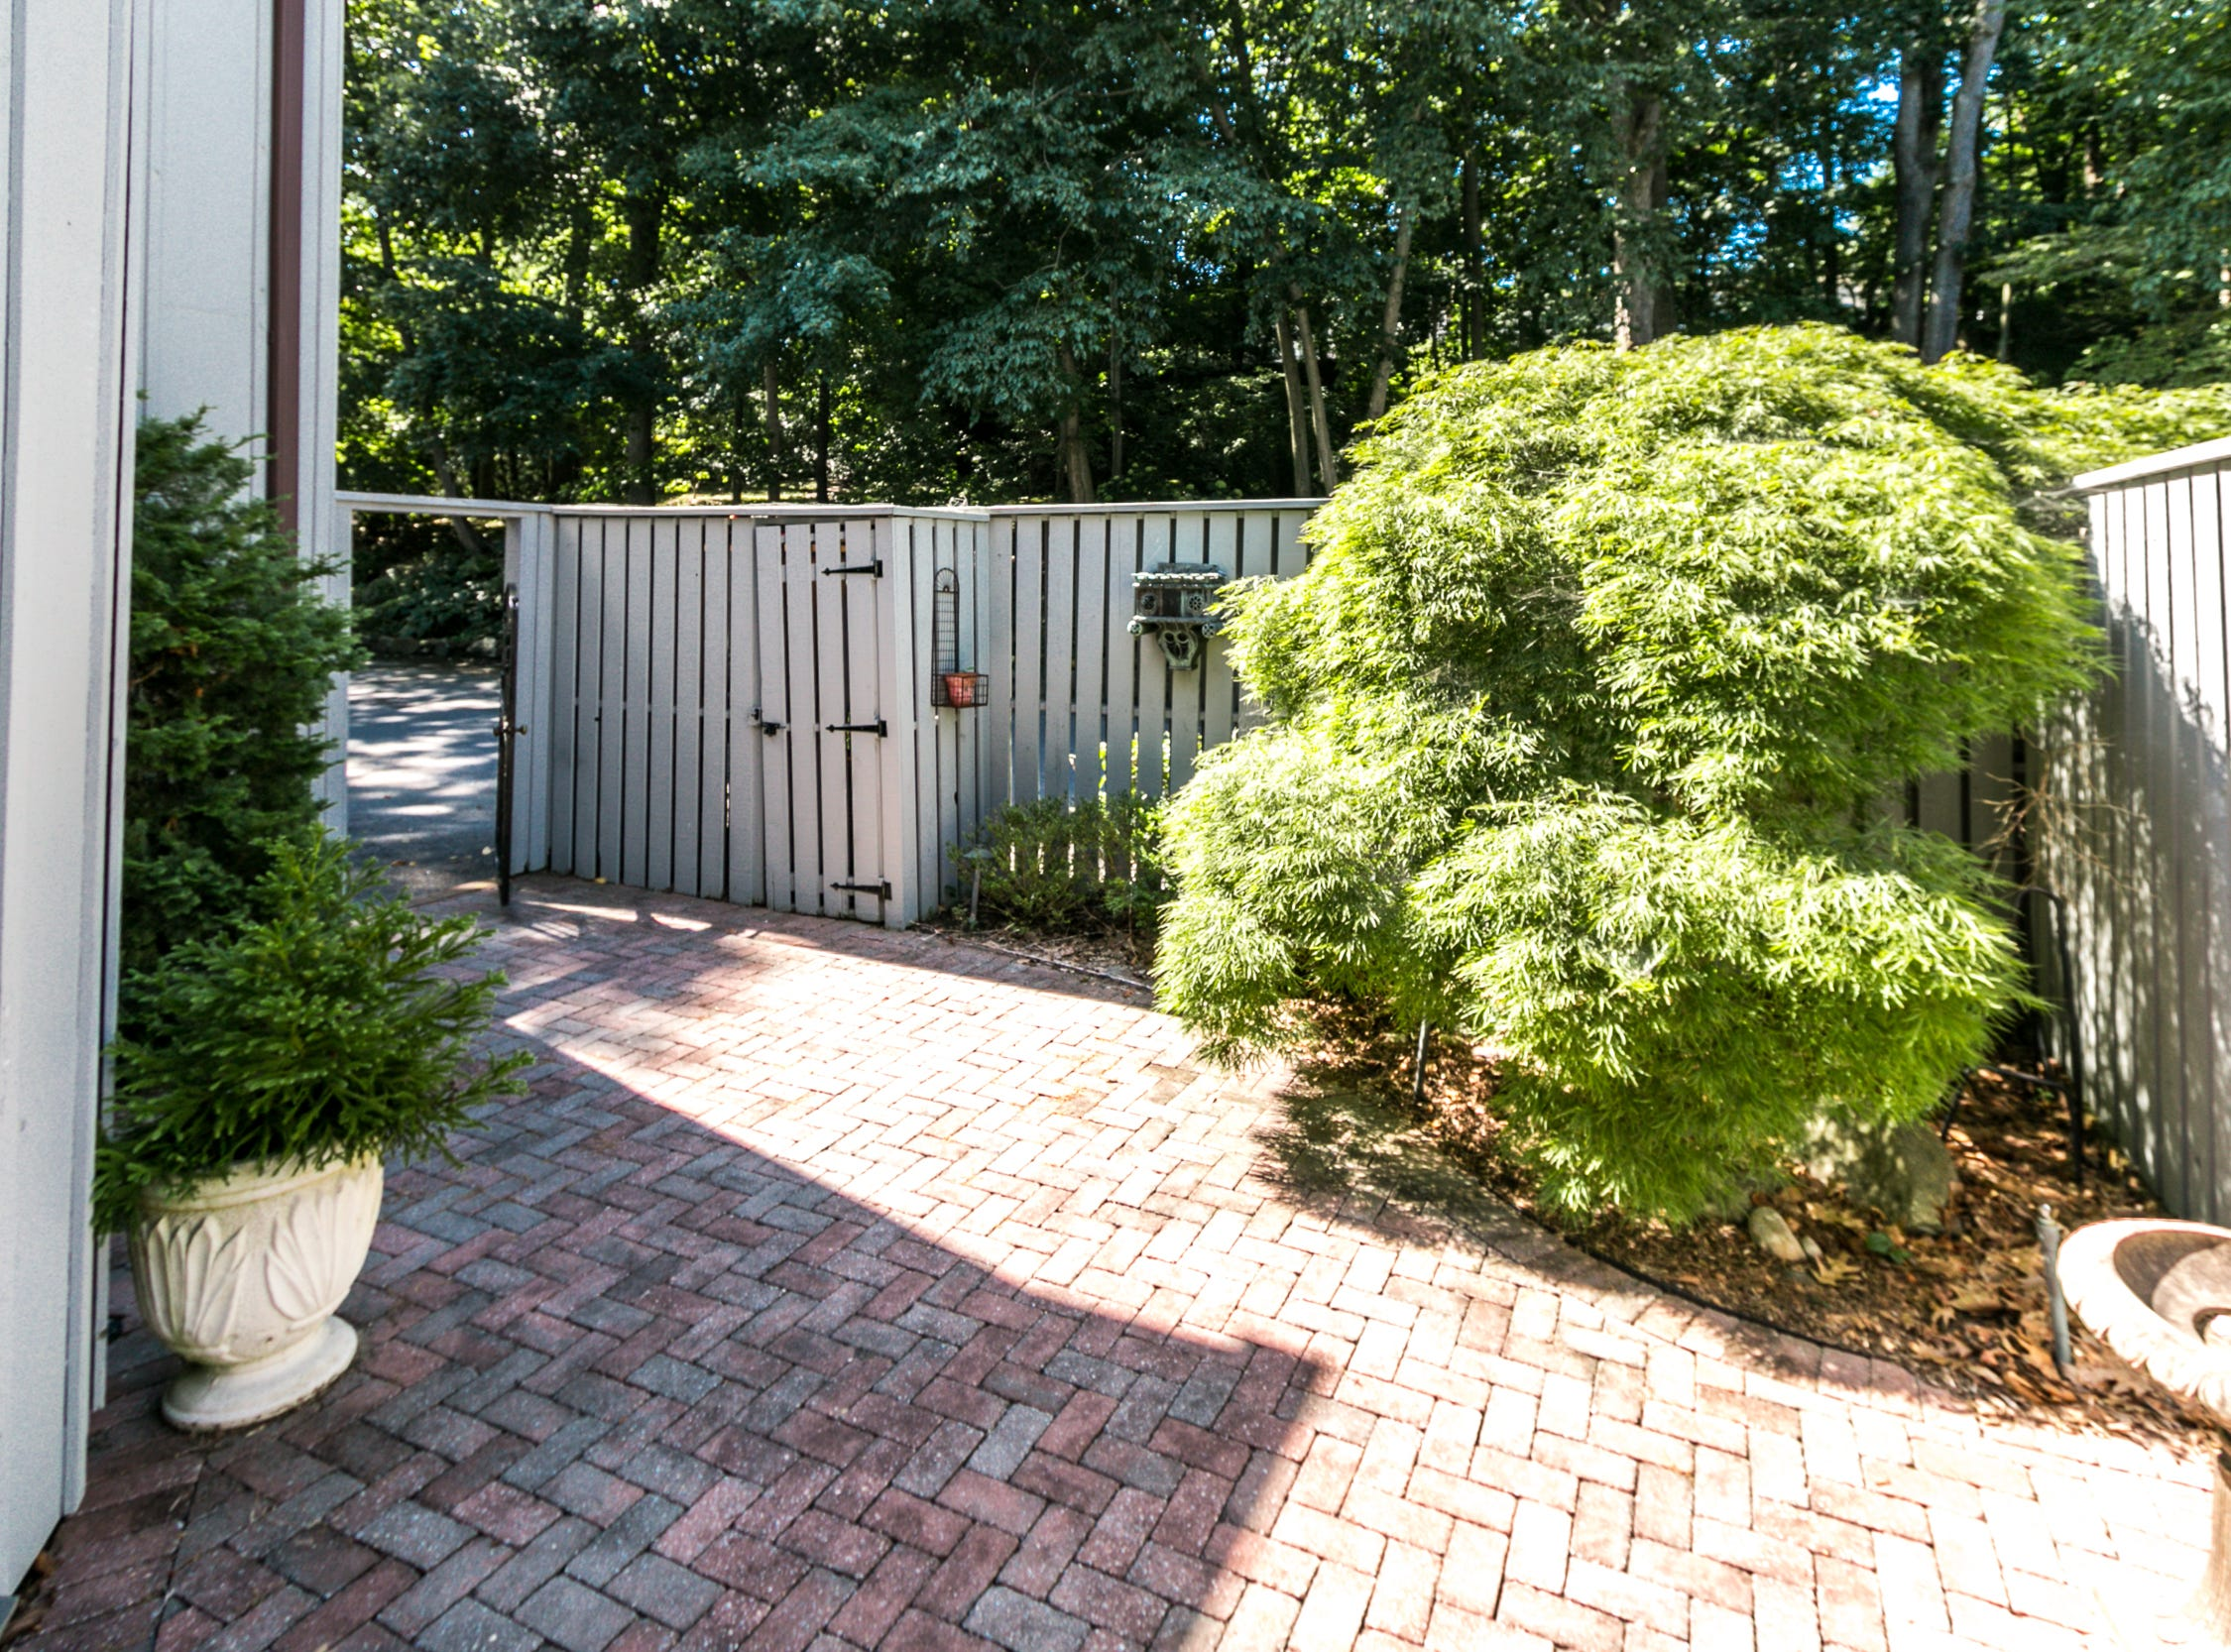 A private brick courtyard enclosed in a fence is the private entrance to this condo at 7 Brandywine Falls Road in Wilmington.